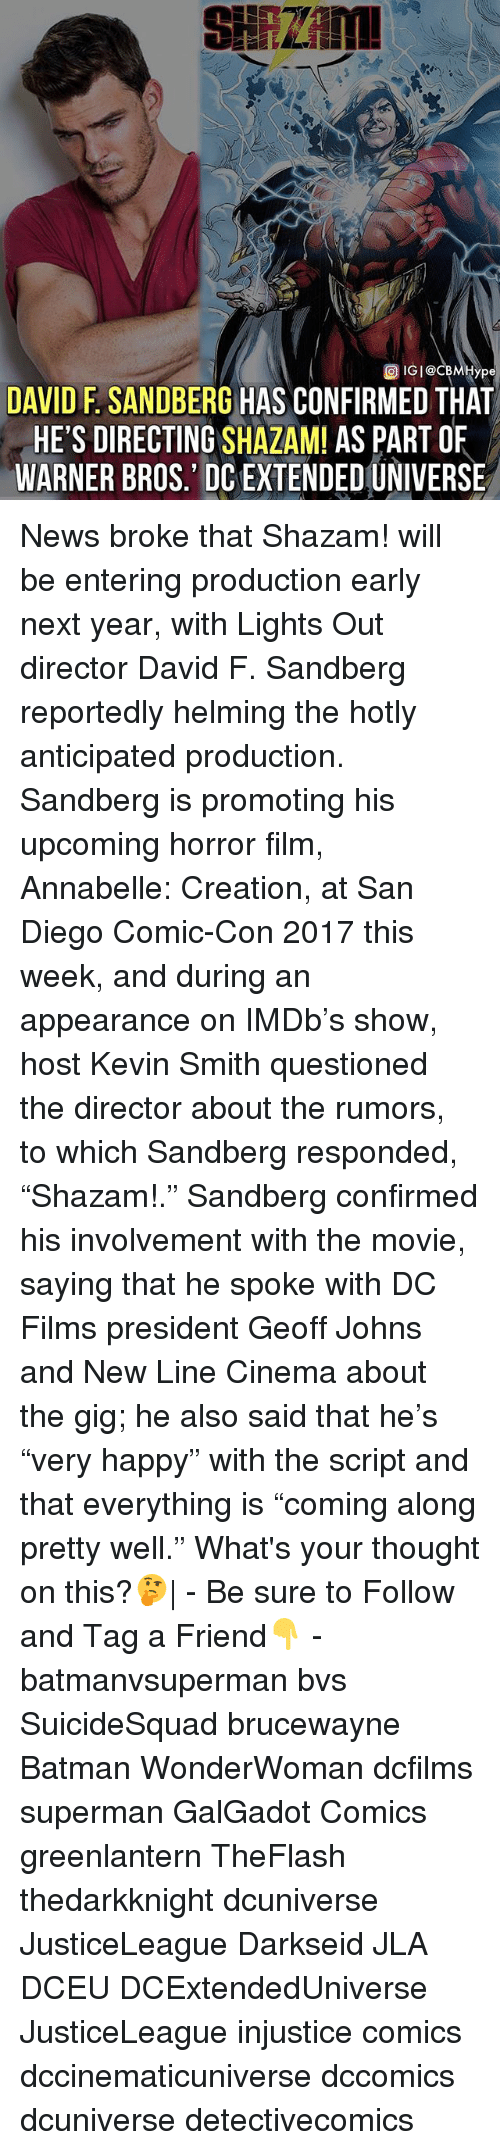 "Batman, Friends, and Memes: ype  DAVID F. SANDBERG HAS CONFIRMED THAT  HE'S DIRECTING SHAZAM! AS PART OF  WARNER BROS.' DC EXTENDED UNIVERSE News broke that Shazam! will be entering production early next year, with Lights Out director David F. Sandberg reportedly helming the hotly anticipated production. Sandberg is promoting his upcoming horror film, Annabelle: Creation, at San Diego Comic-Con 2017 this week, and during an appearance on IMDb's show, host Kevin Smith questioned the director about the rumors, to which Sandberg responded, ""Shazam!."" Sandberg confirmed his involvement with the movie, saying that he spoke with DC Films president Geoff Johns and New Line Cinema about the gig; he also said that he's ""very happy"" with the script and that everything is ""coming along pretty well."" What's your thought on this?🤔